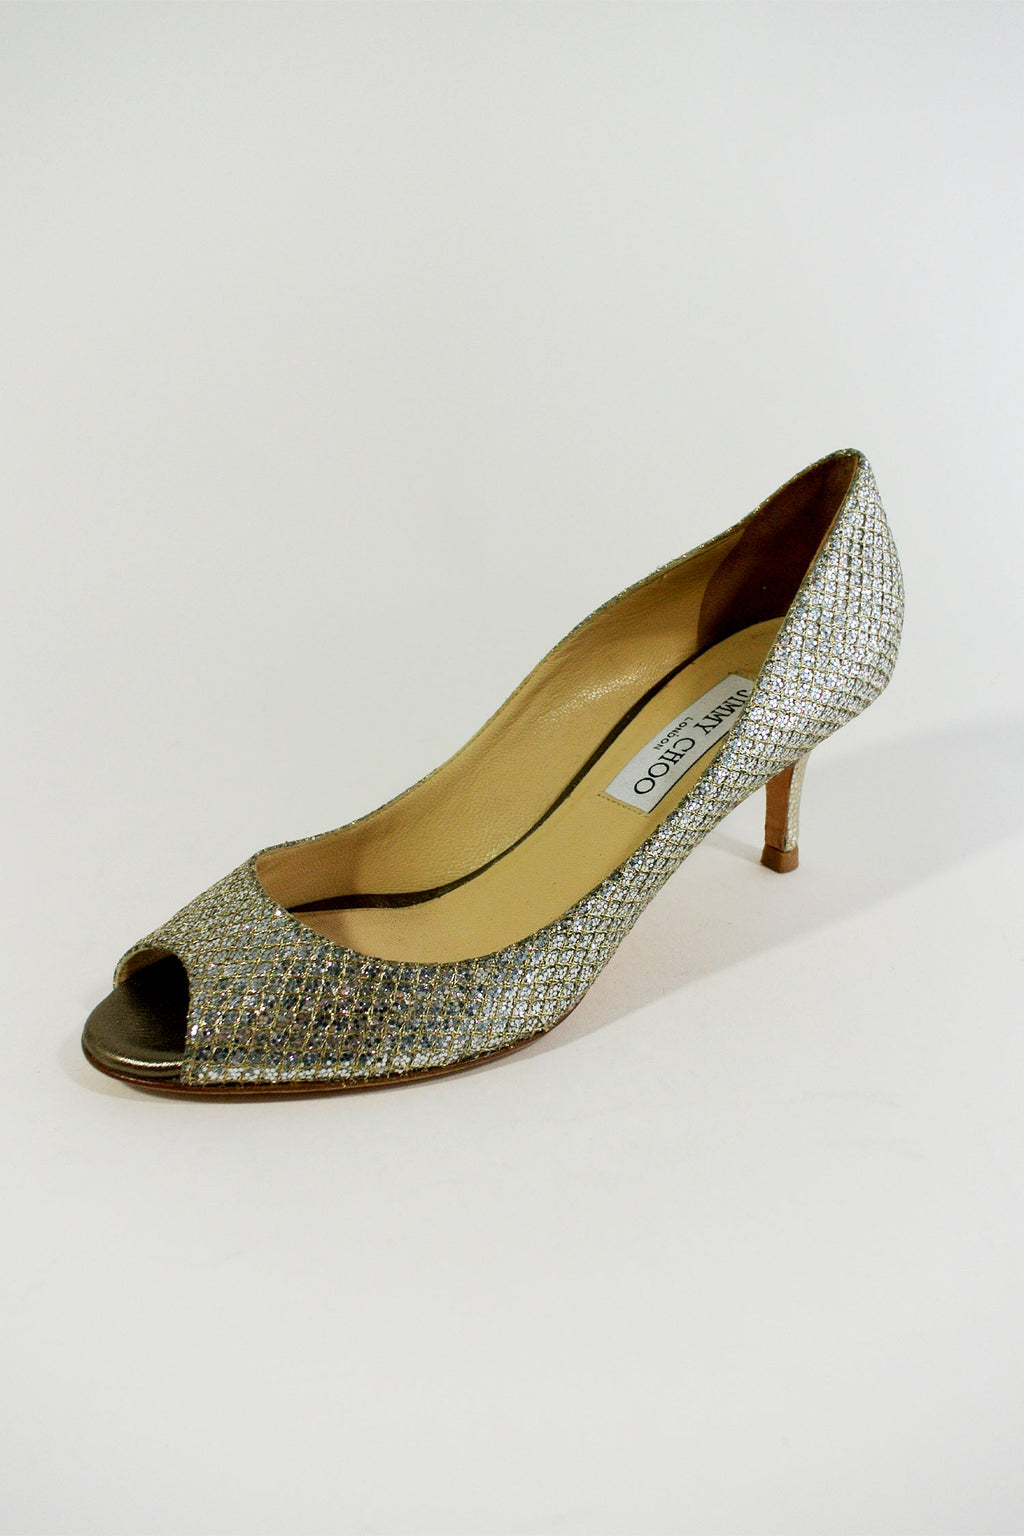 Jimmy Choo Evelyn Glitter Pumps Sz 37